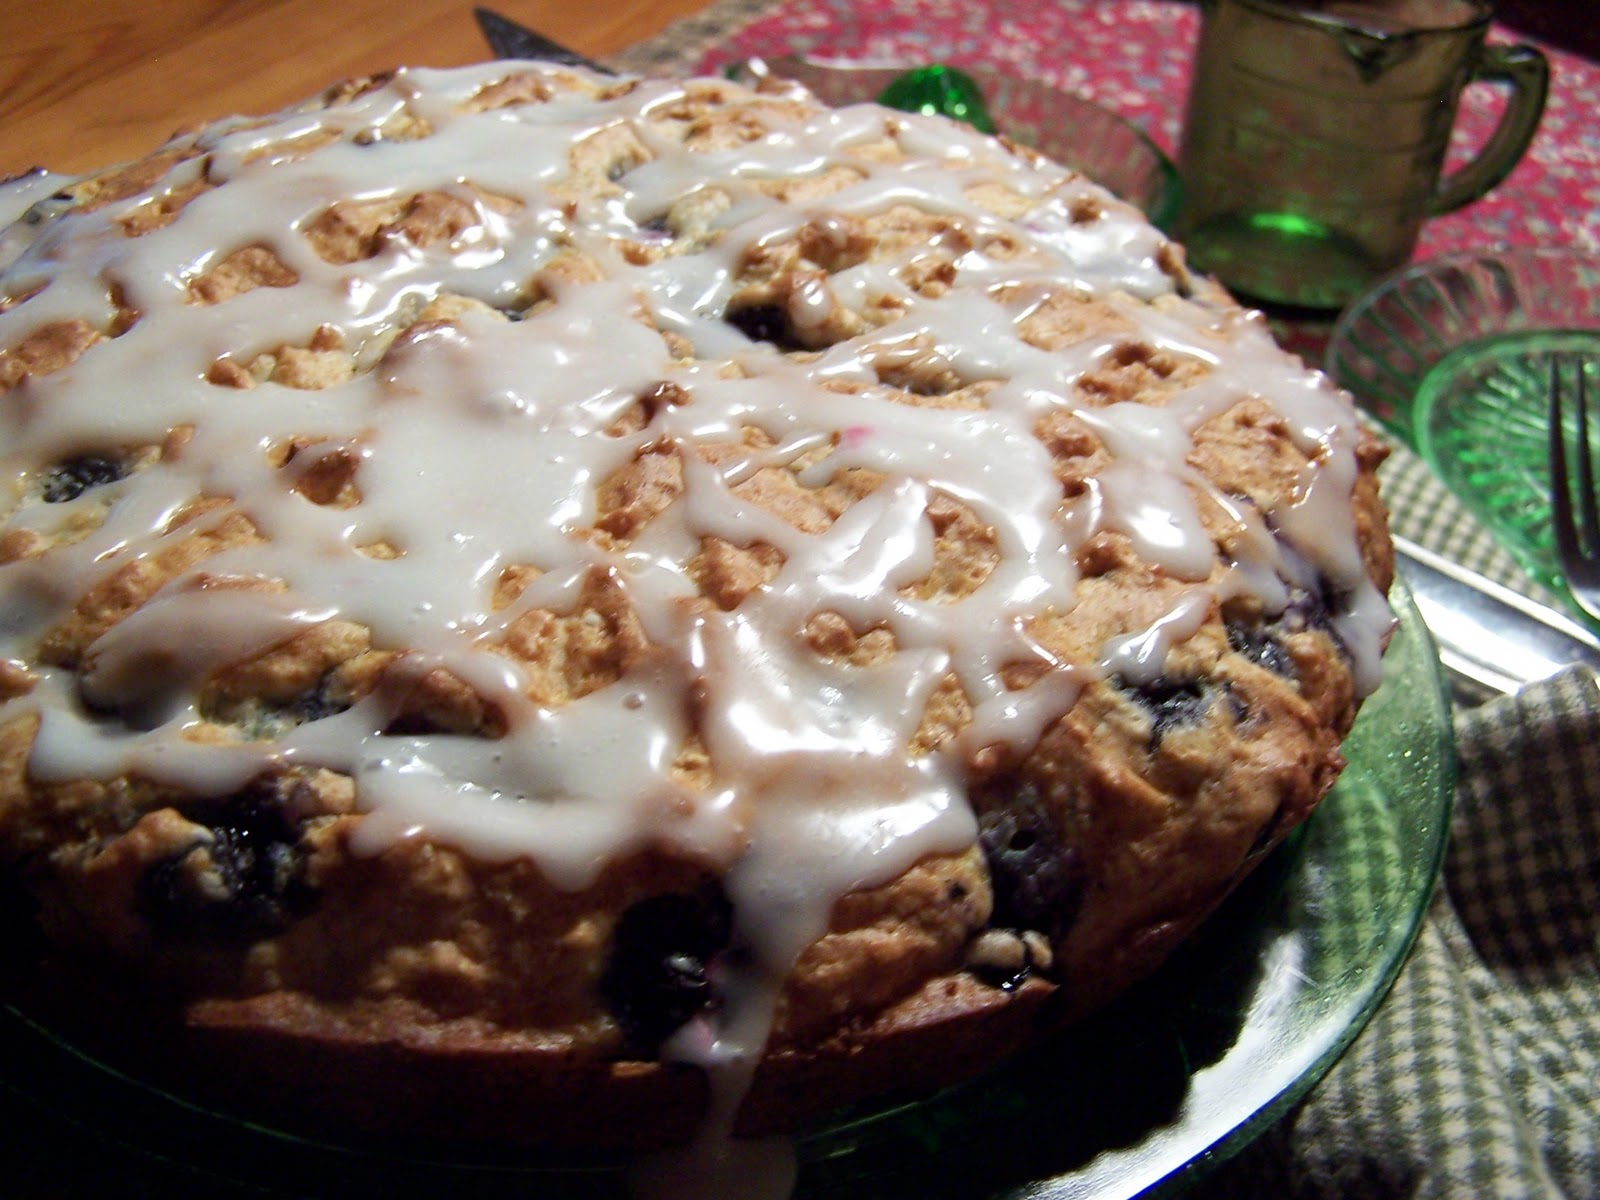 Image search: Bisquick Coffee Cake